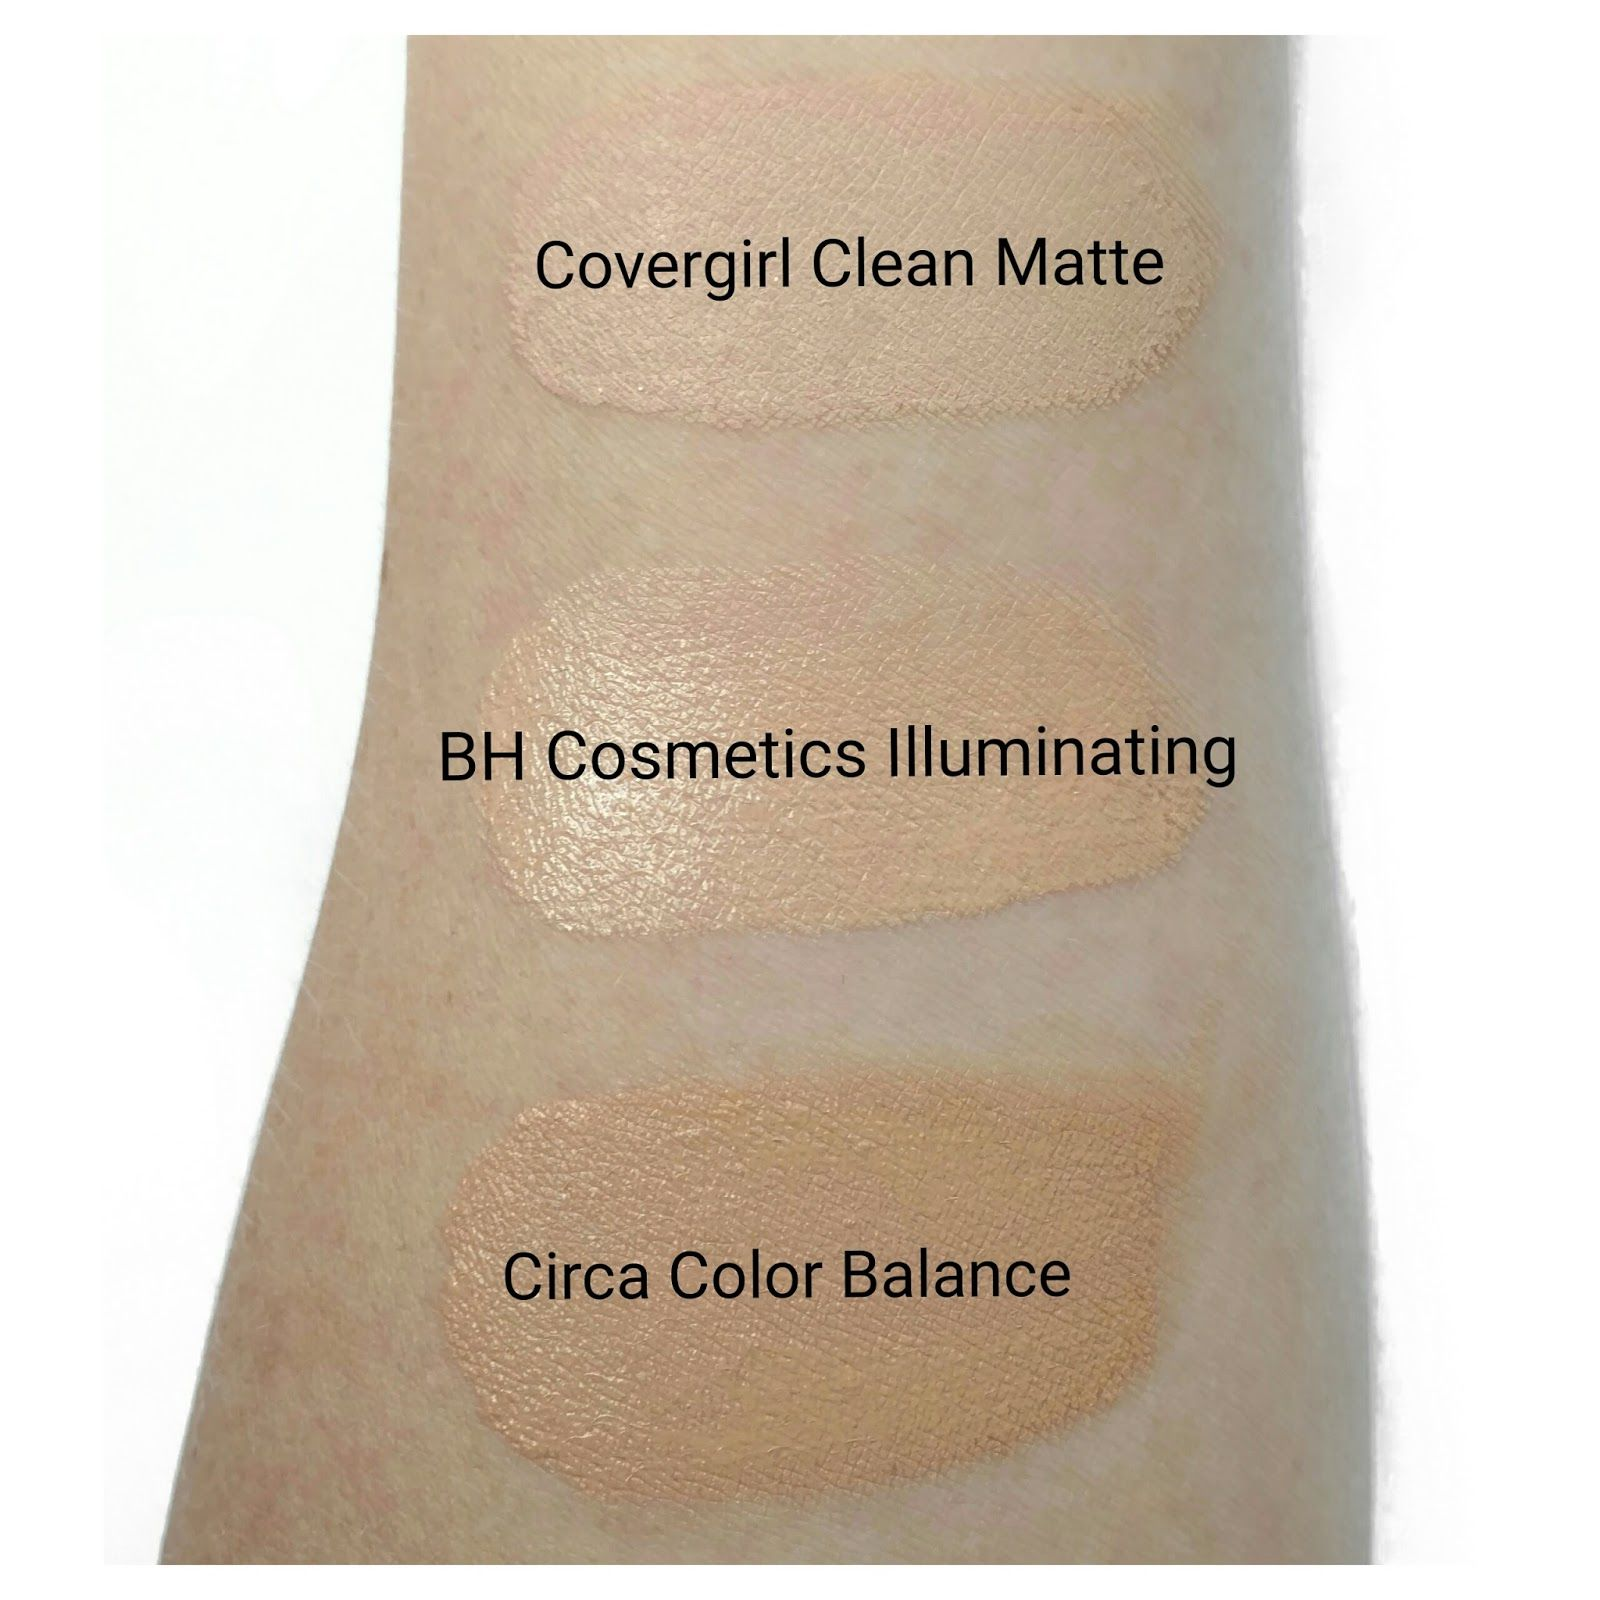 Clean Matte BB Cream by Covergirl #20